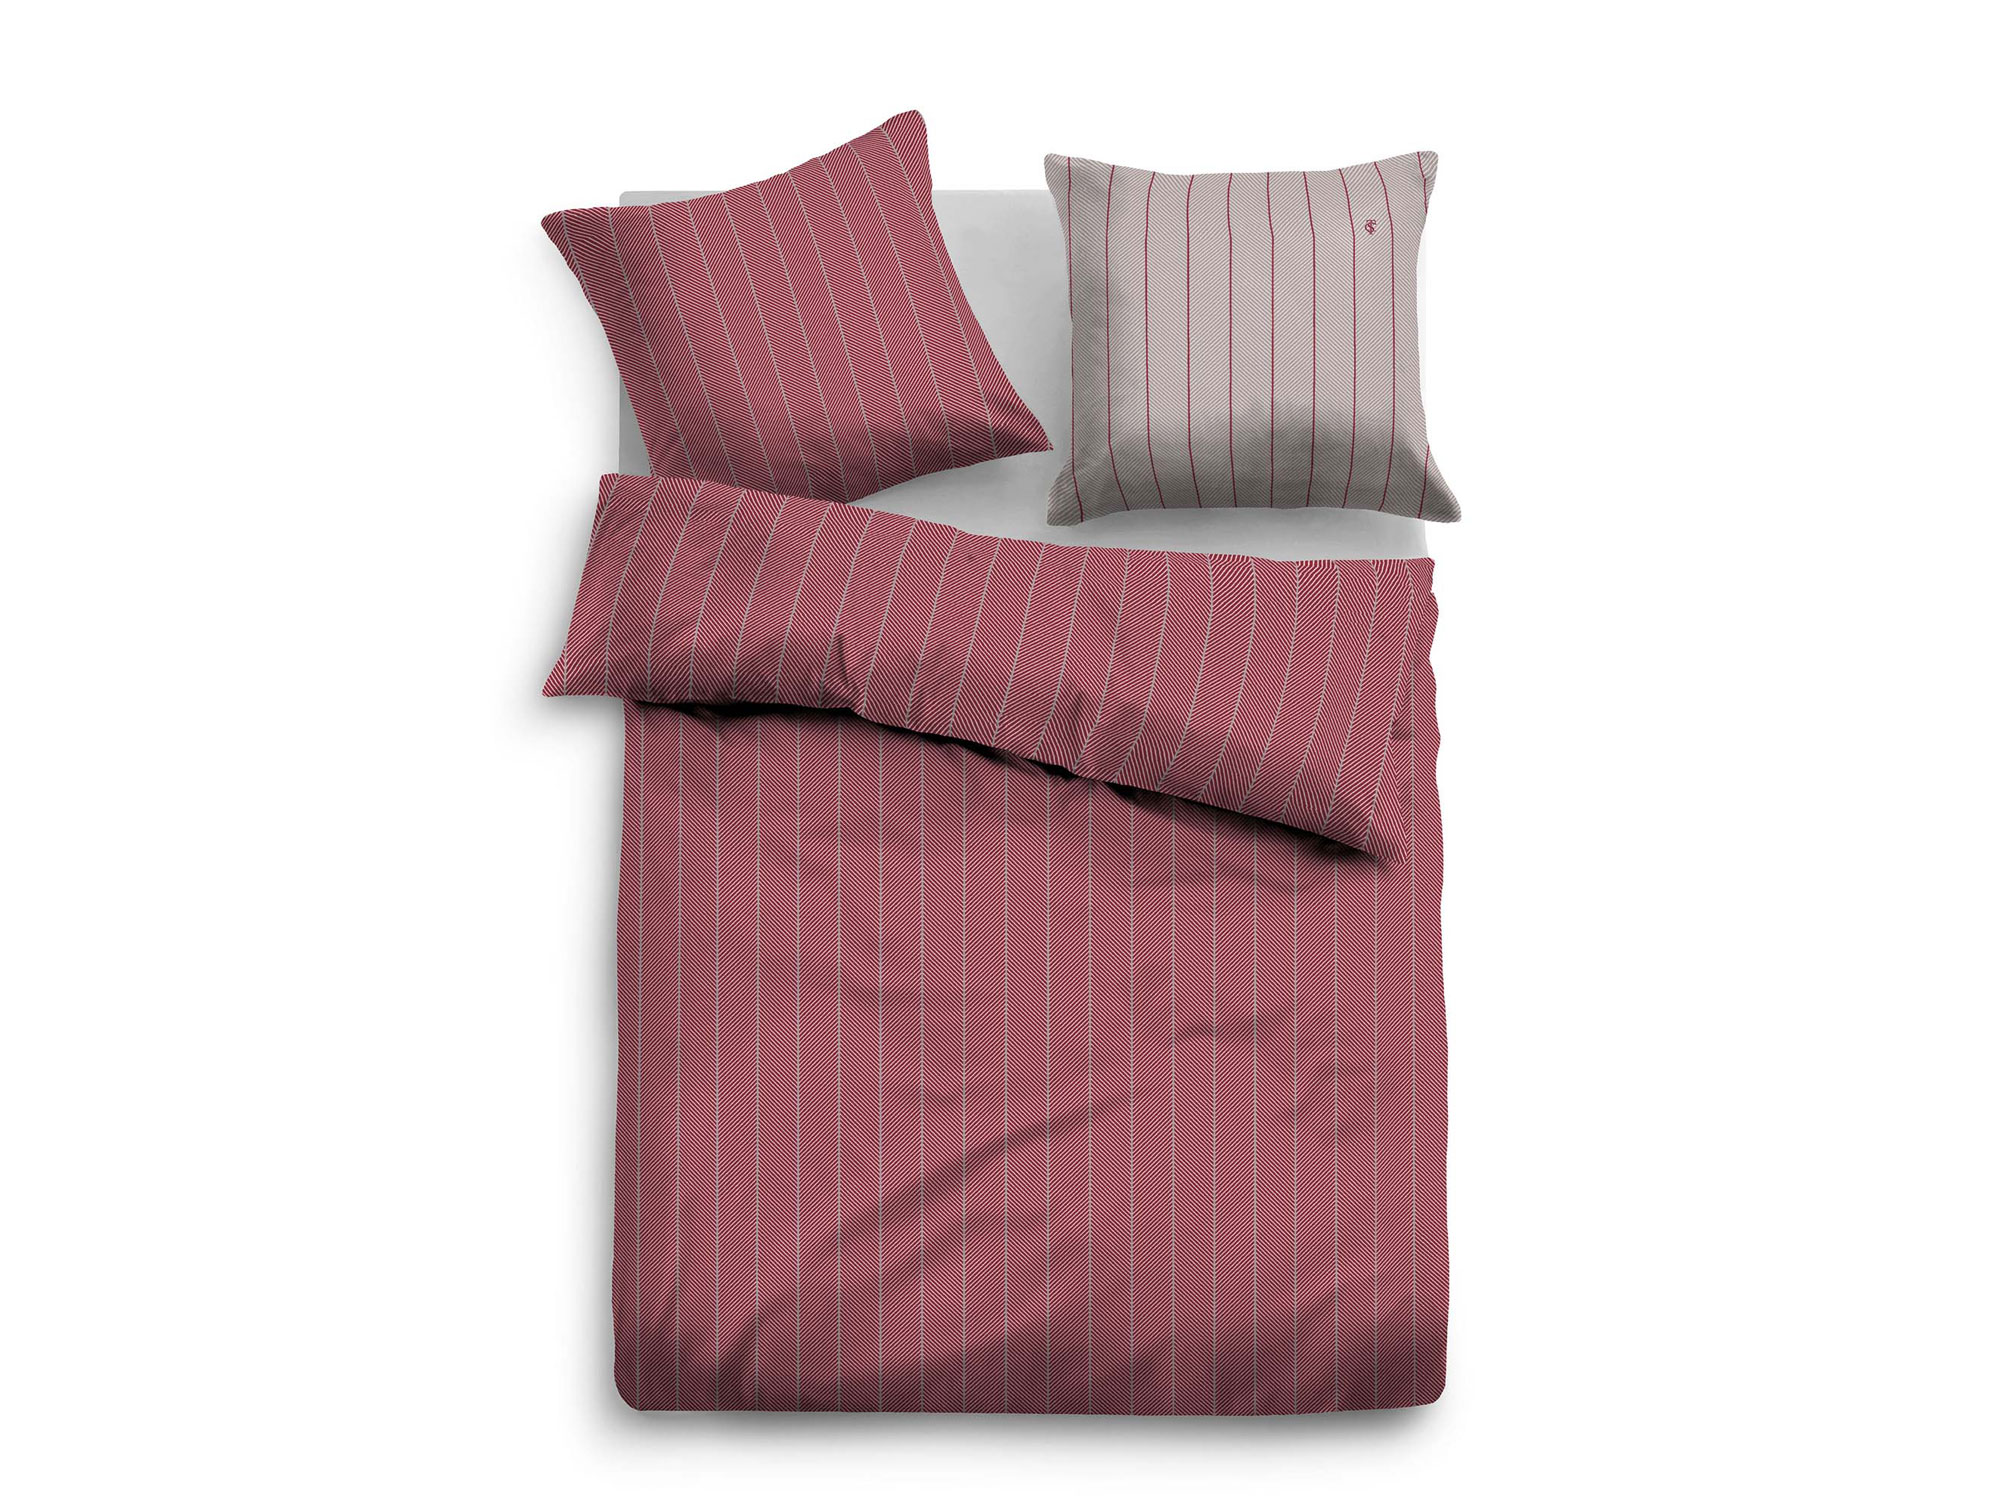 Tom Tailor Bettwäsche Tom Tailor Bettwäsche Satin Bed Linen 135x200 4380x80 Cm